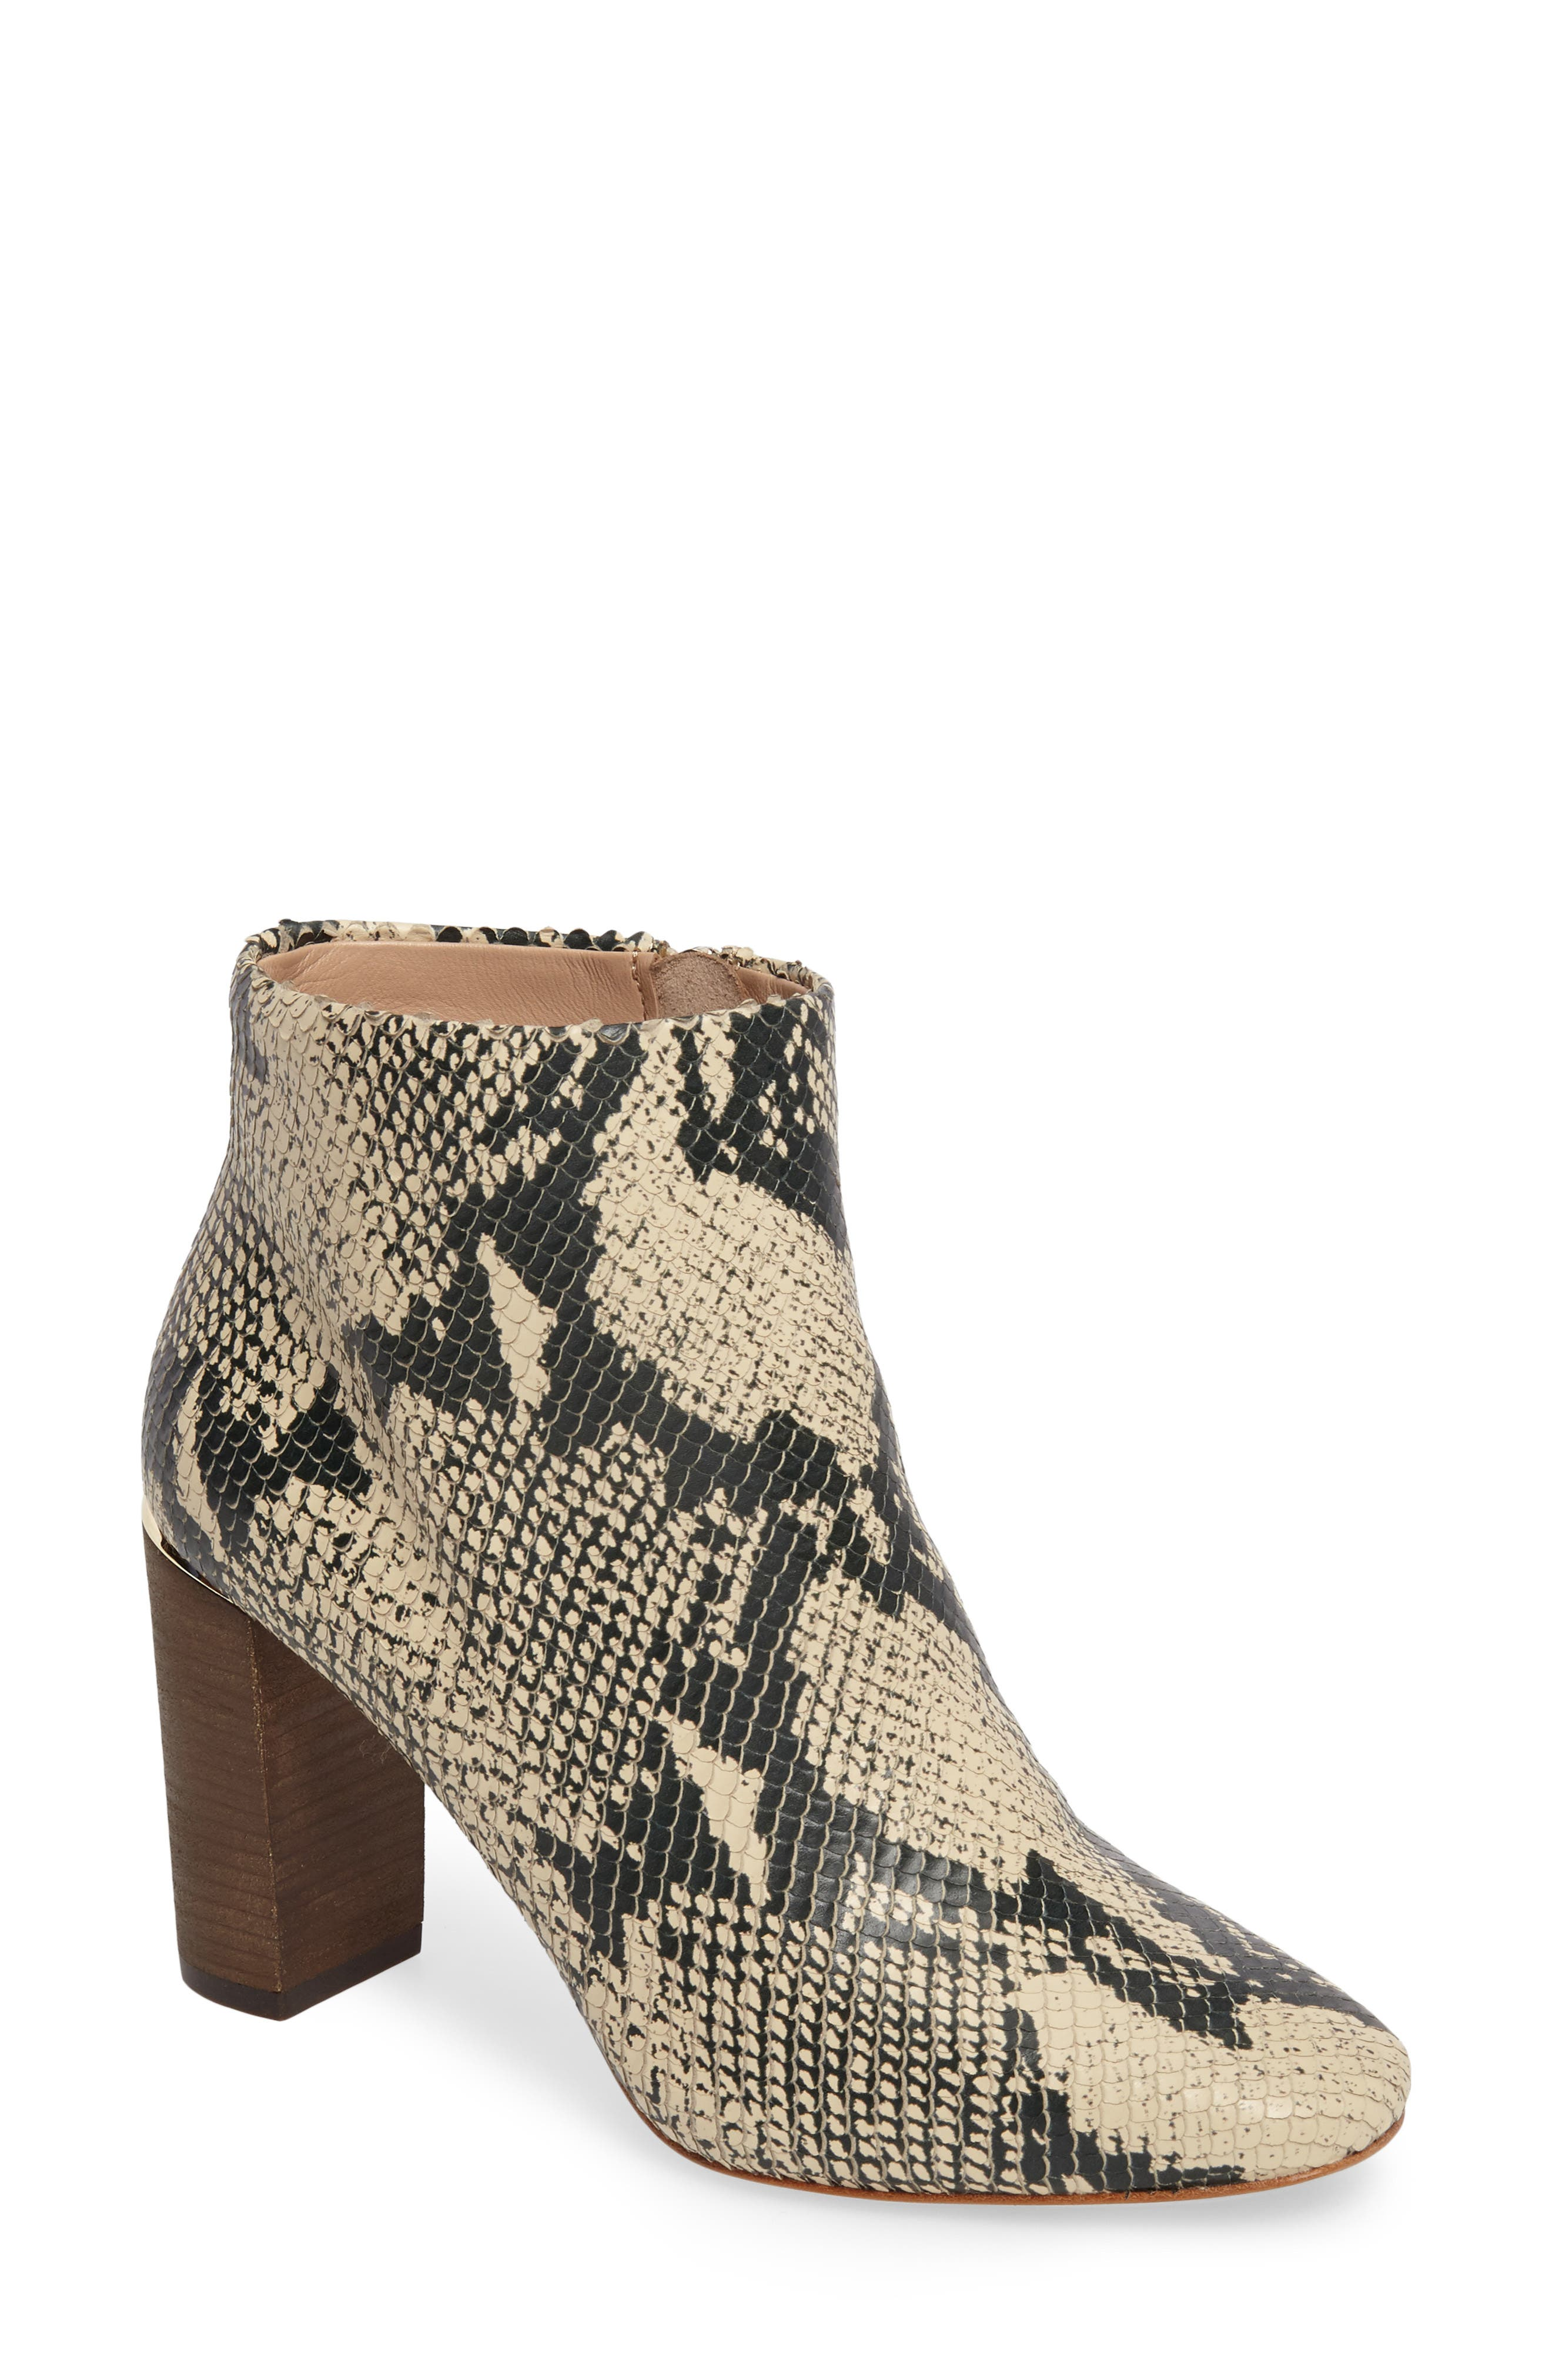 Rickie Crescent Heel Bootie,                             Main thumbnail 1, color,                             021